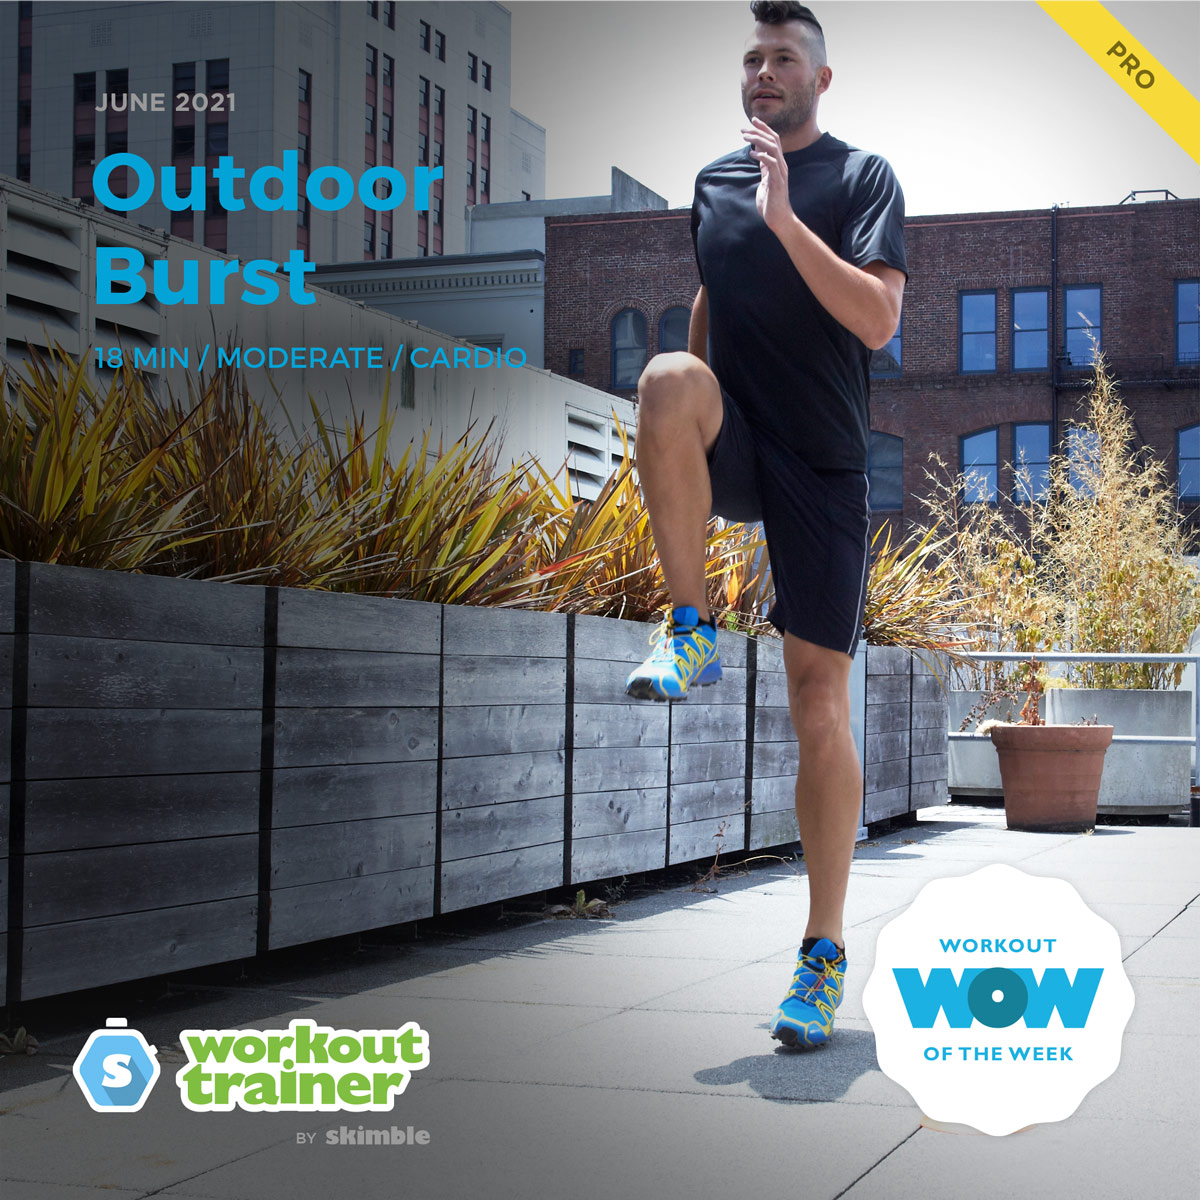 Male Fitness Instructor incorporating a Backwards Job into his outdoor fitness routine